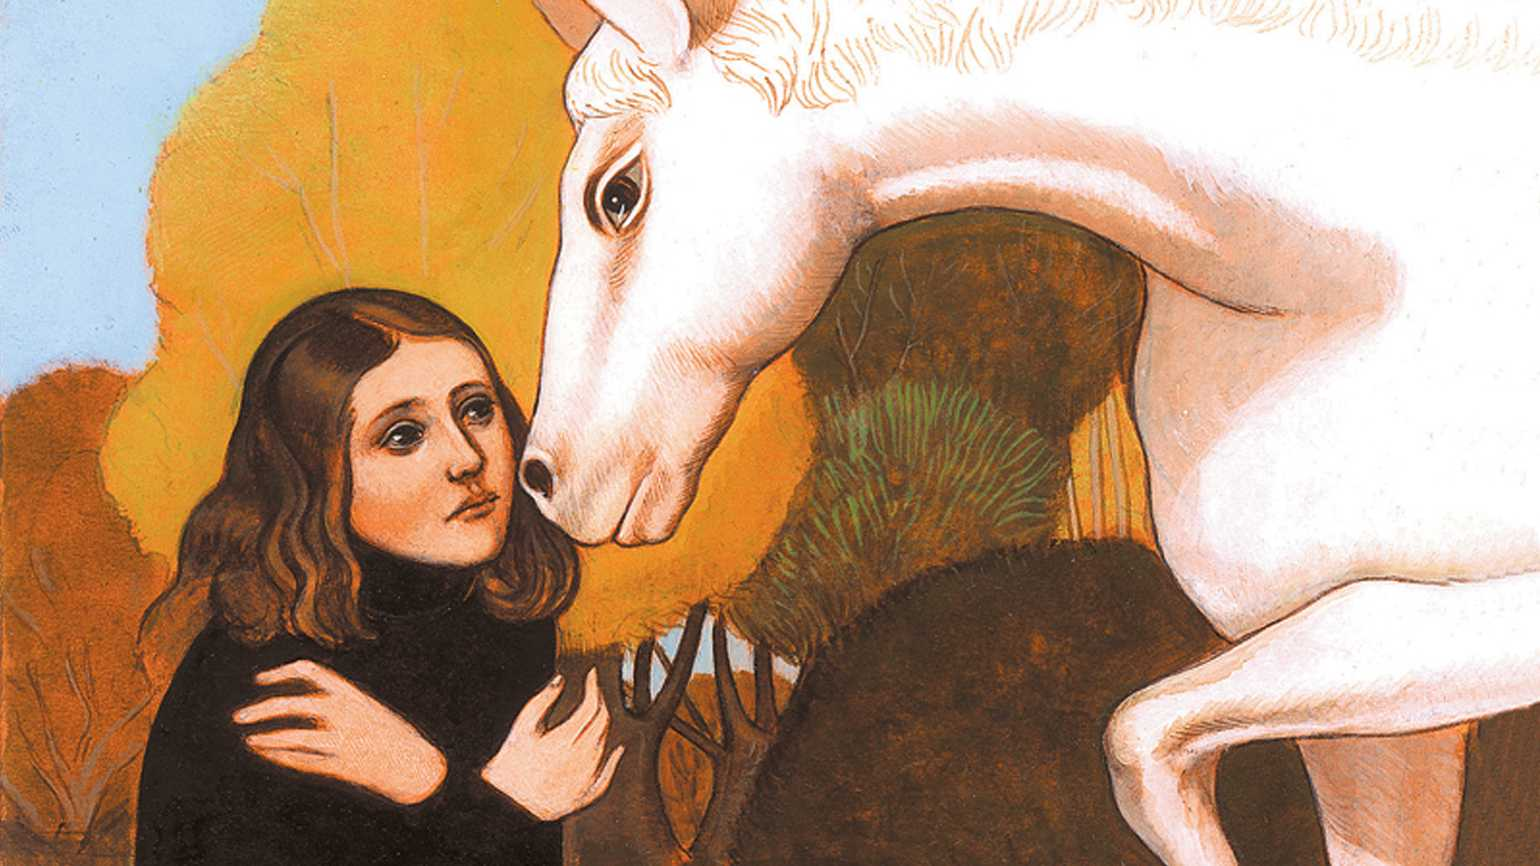 An artist's rendering of a young woman being nuzzled by a white horse